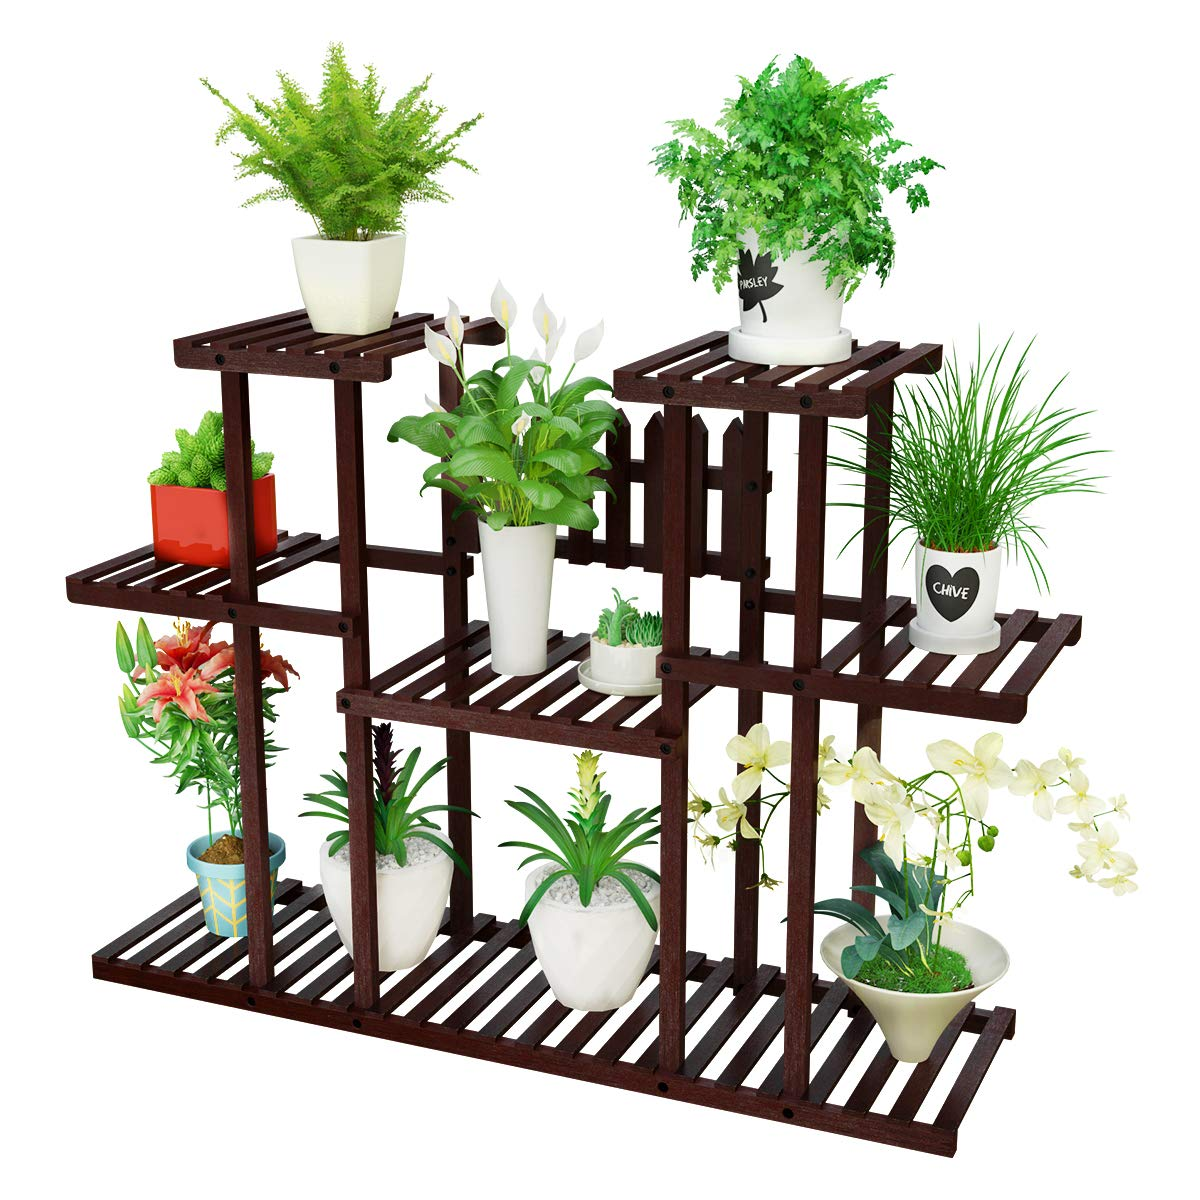 Homemaxs Plant Stand Indoor 3 Tier Bamboo Flower Pot Shelves, Large Storage Space Display Shelf for Balcony, Garden and Patio-Brown by Homemaxs